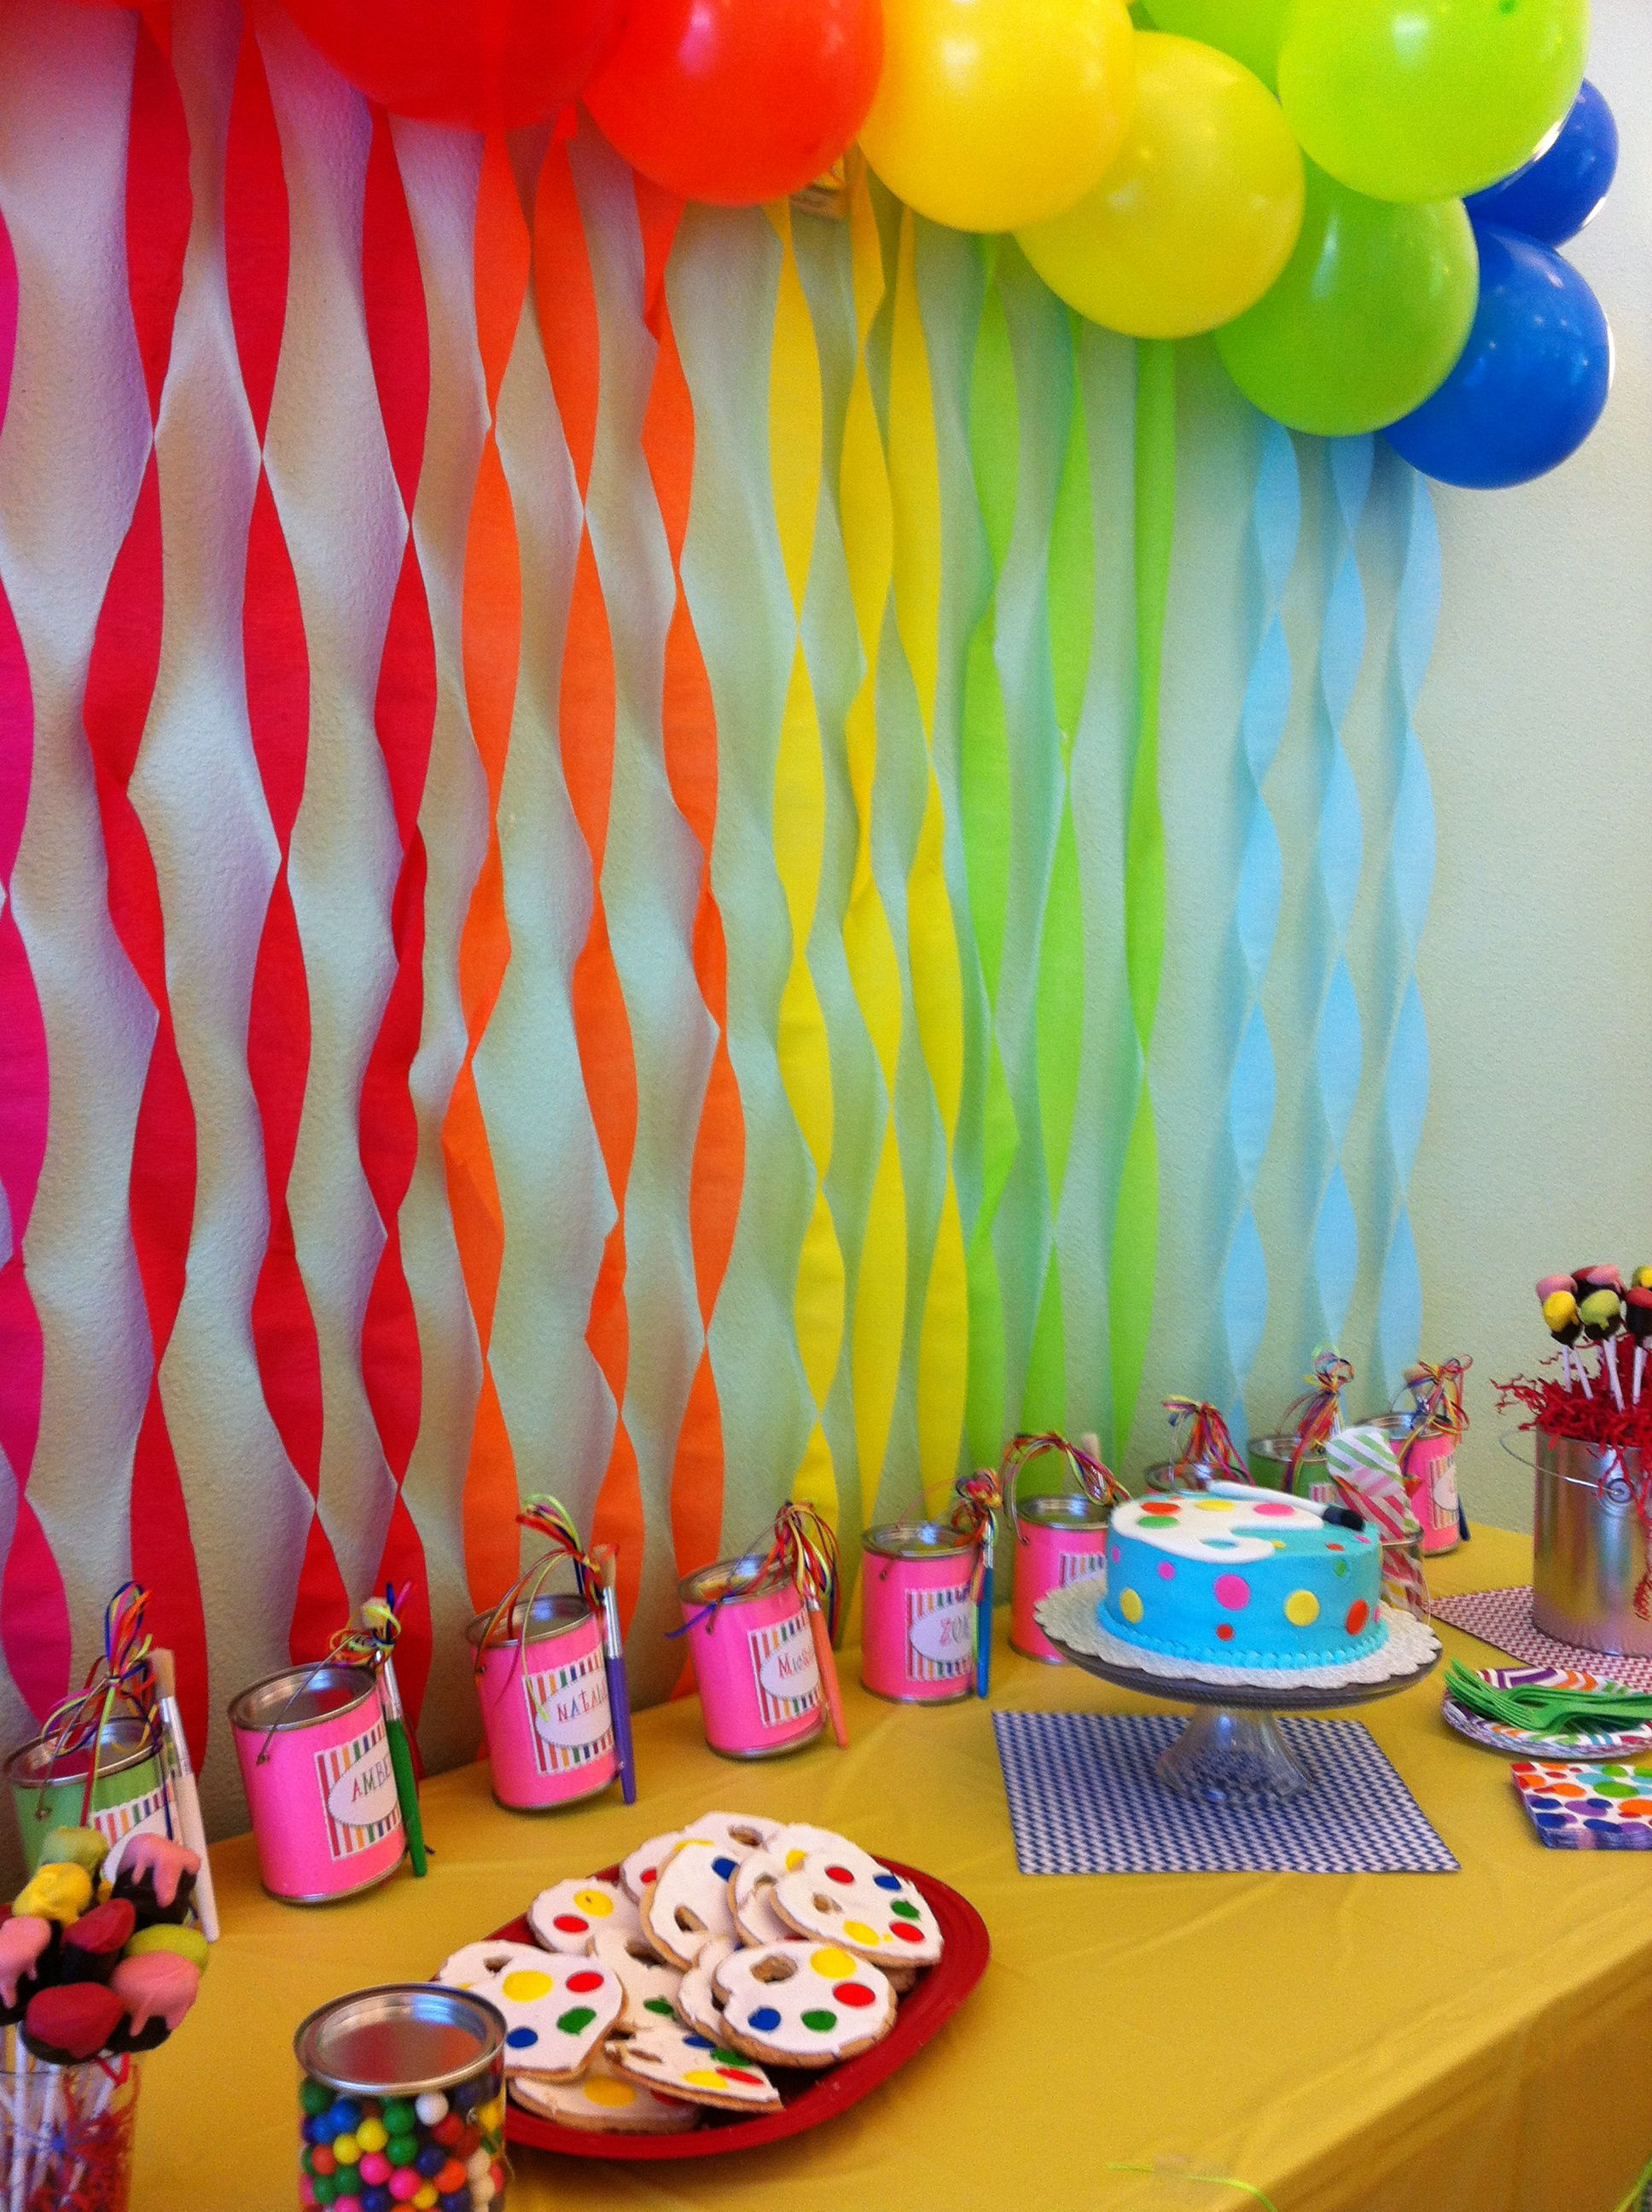 8 year old girl birthday art party Art party Pinterest Art